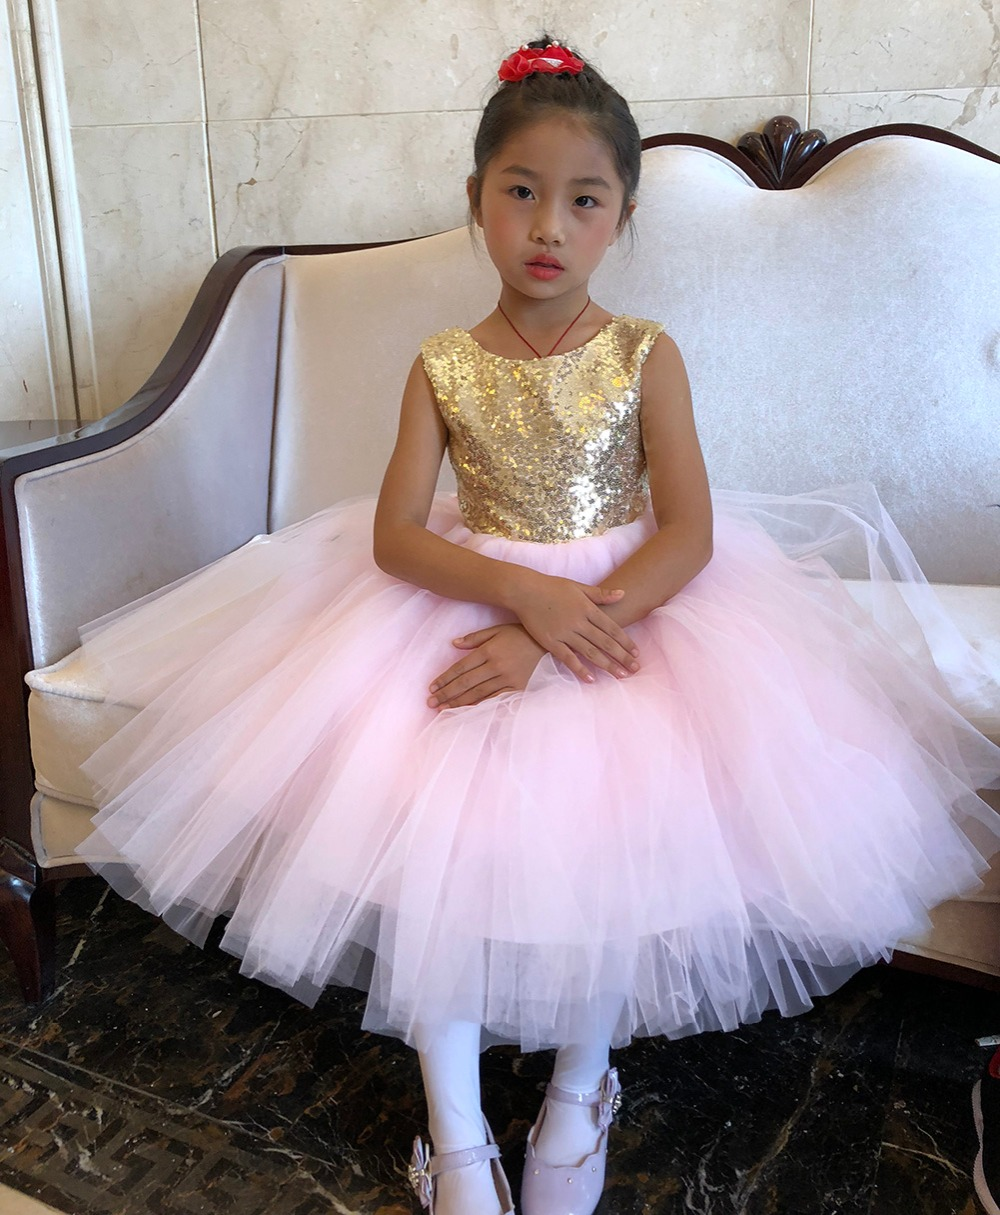 Pink Teen Wedding Dress Sequin Knee Length O-neck Paillette Girls Sequin Dress for Girls Sequin Evening Dress Tutu with Bowknot (3)